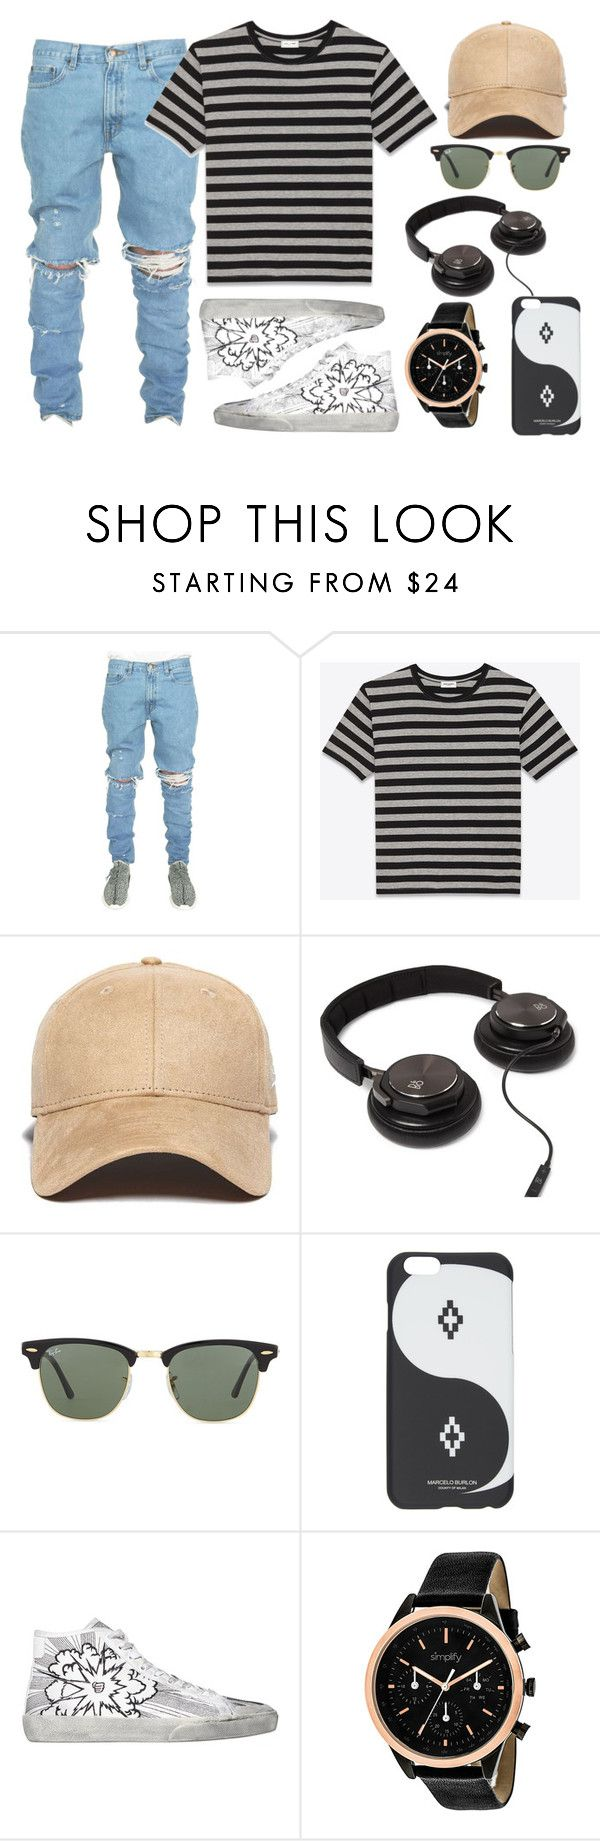 """""""outfit#86"""" by alifia-fae on Polyvore featuring Yves Saint Laurent, New Era, Ray-Ban, County Of Milan, Simplify, men's fashion and menswear"""